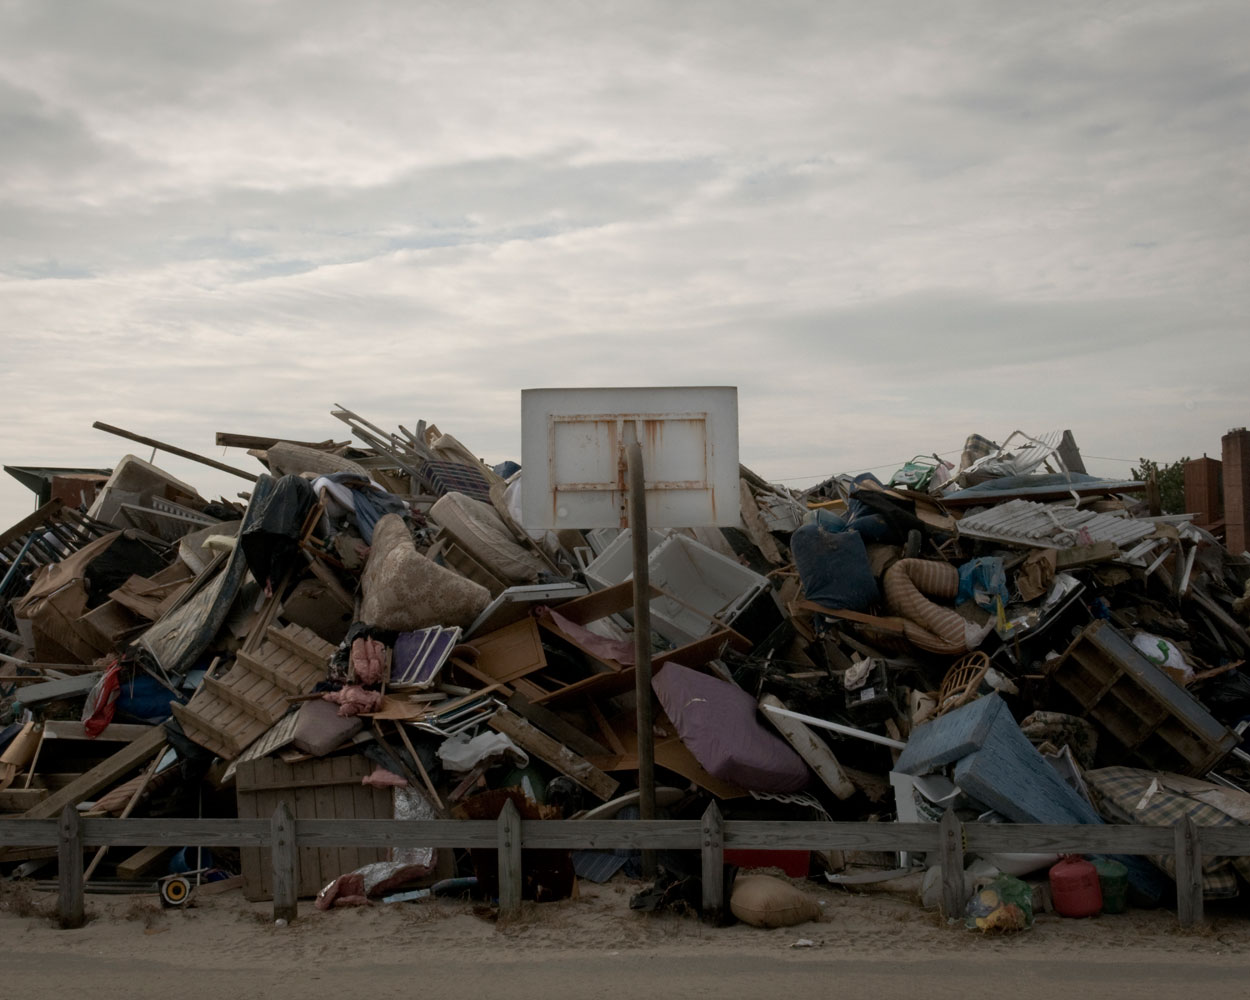 Debris stored next to a basketball hoop in Breezy Point, Queens, N.Y., Nov. 10, 2012